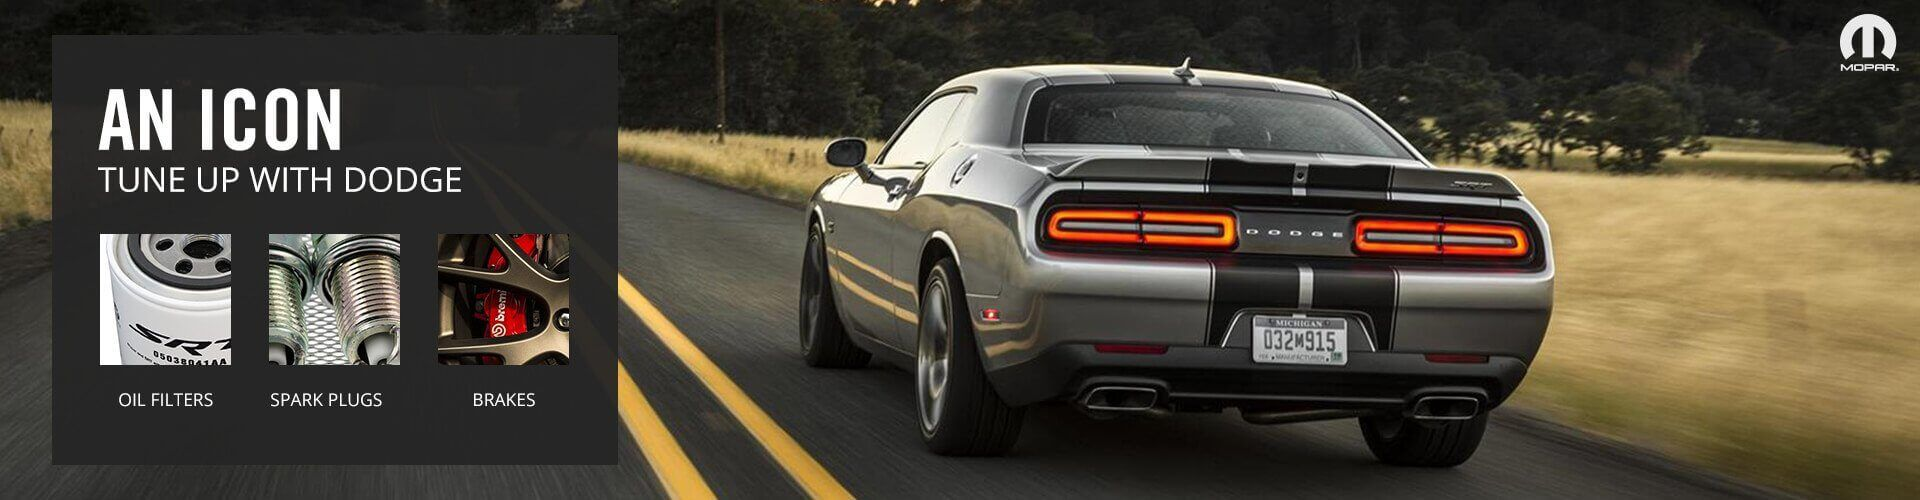 Dodge Maintenance Parts